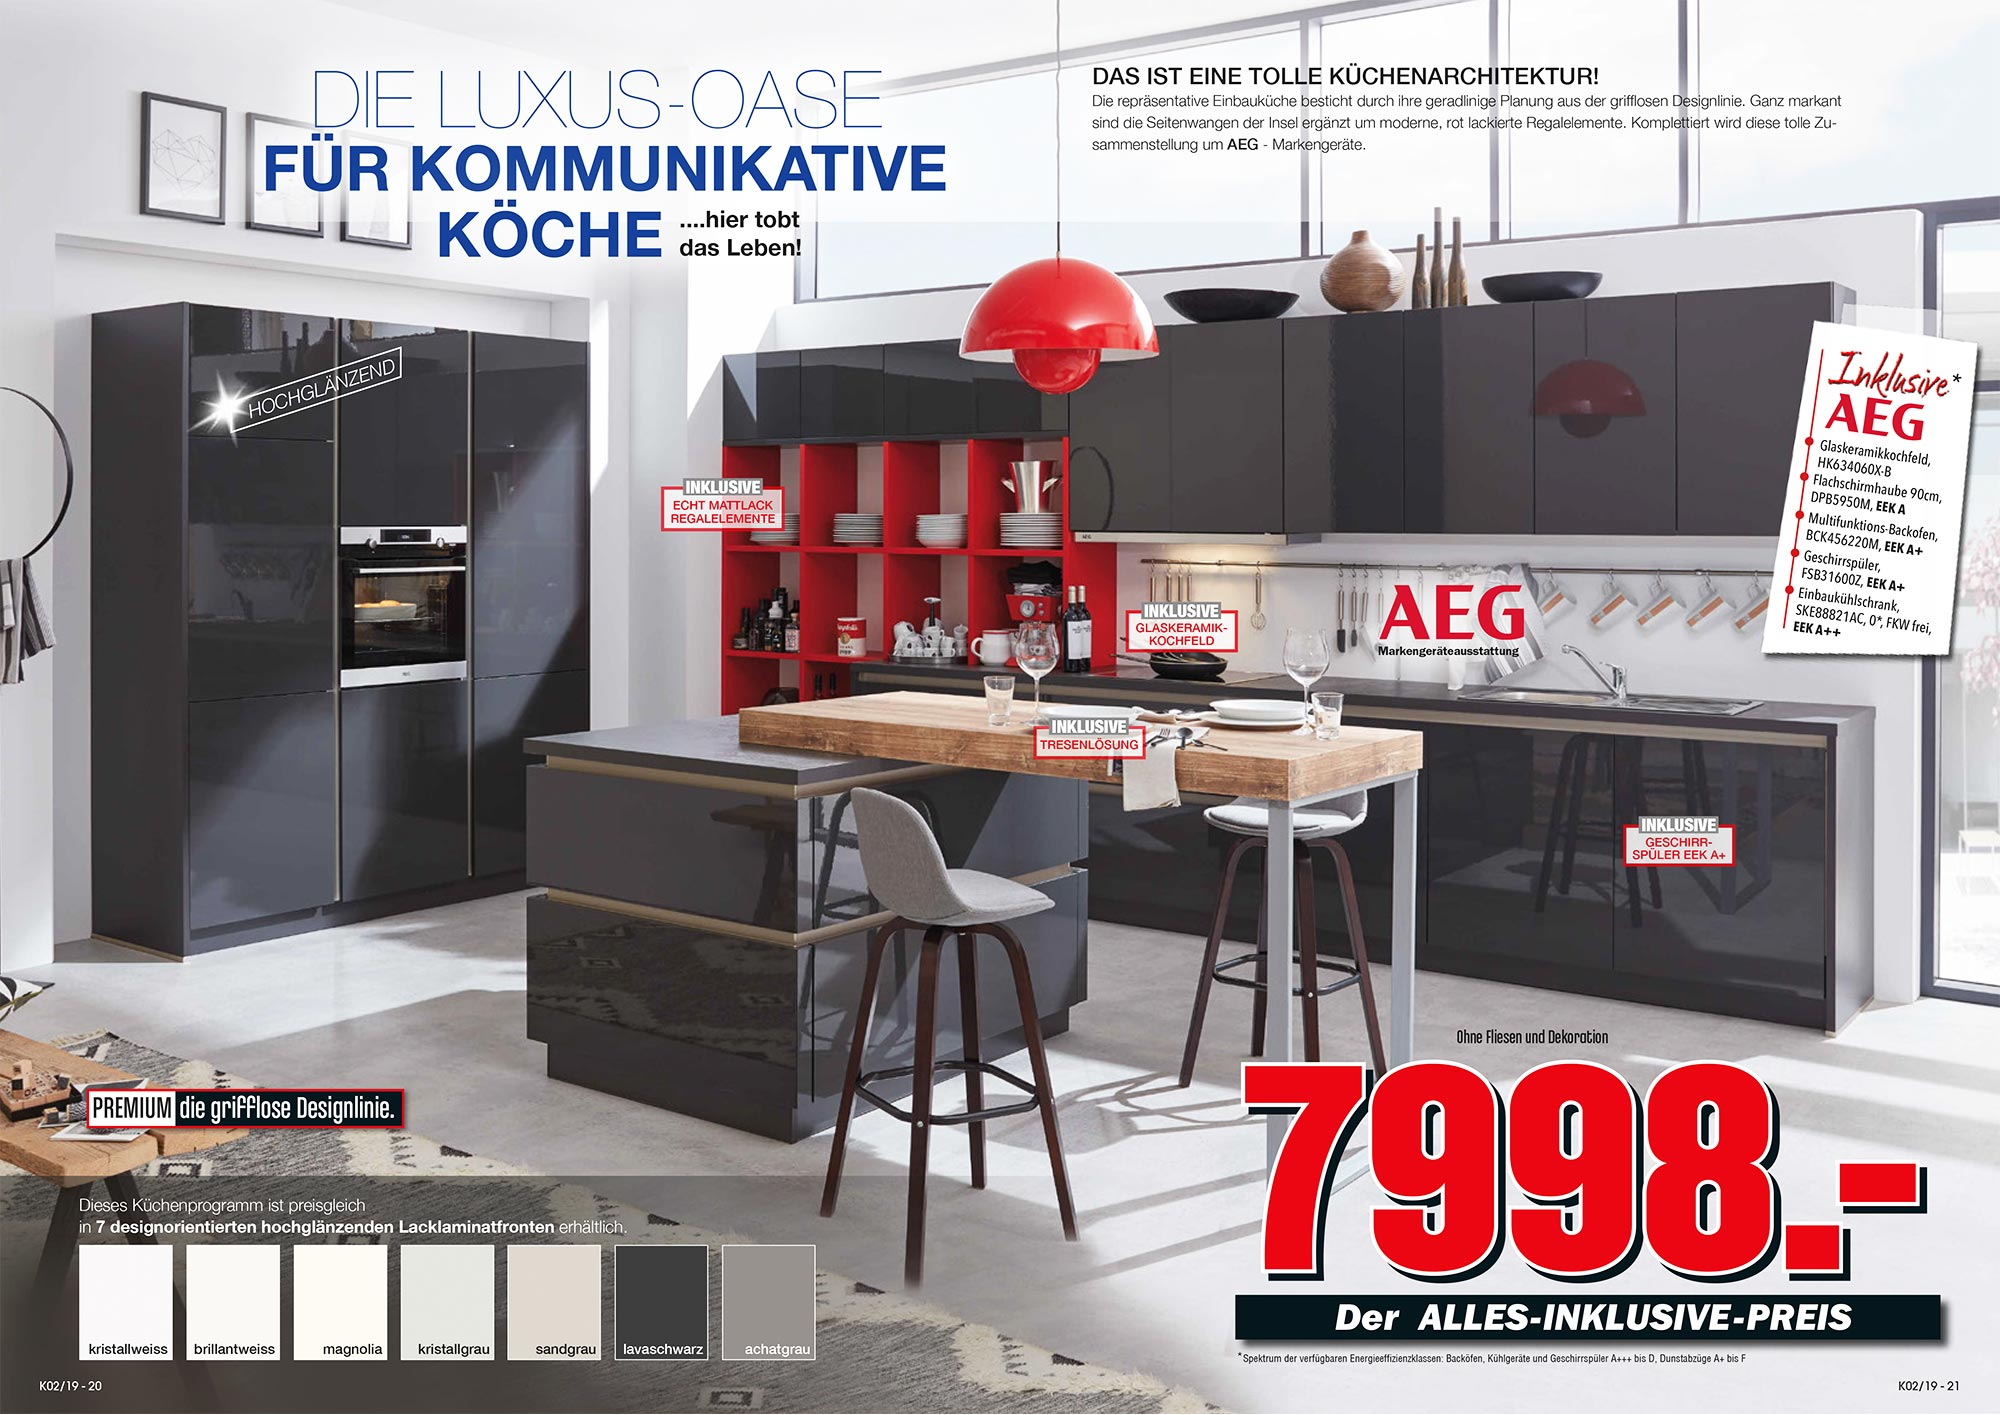 www kchen aktuell cheap kuchen aktuell buchholz inspiration kchen aktuell buchholz am in kchen. Black Bedroom Furniture Sets. Home Design Ideas